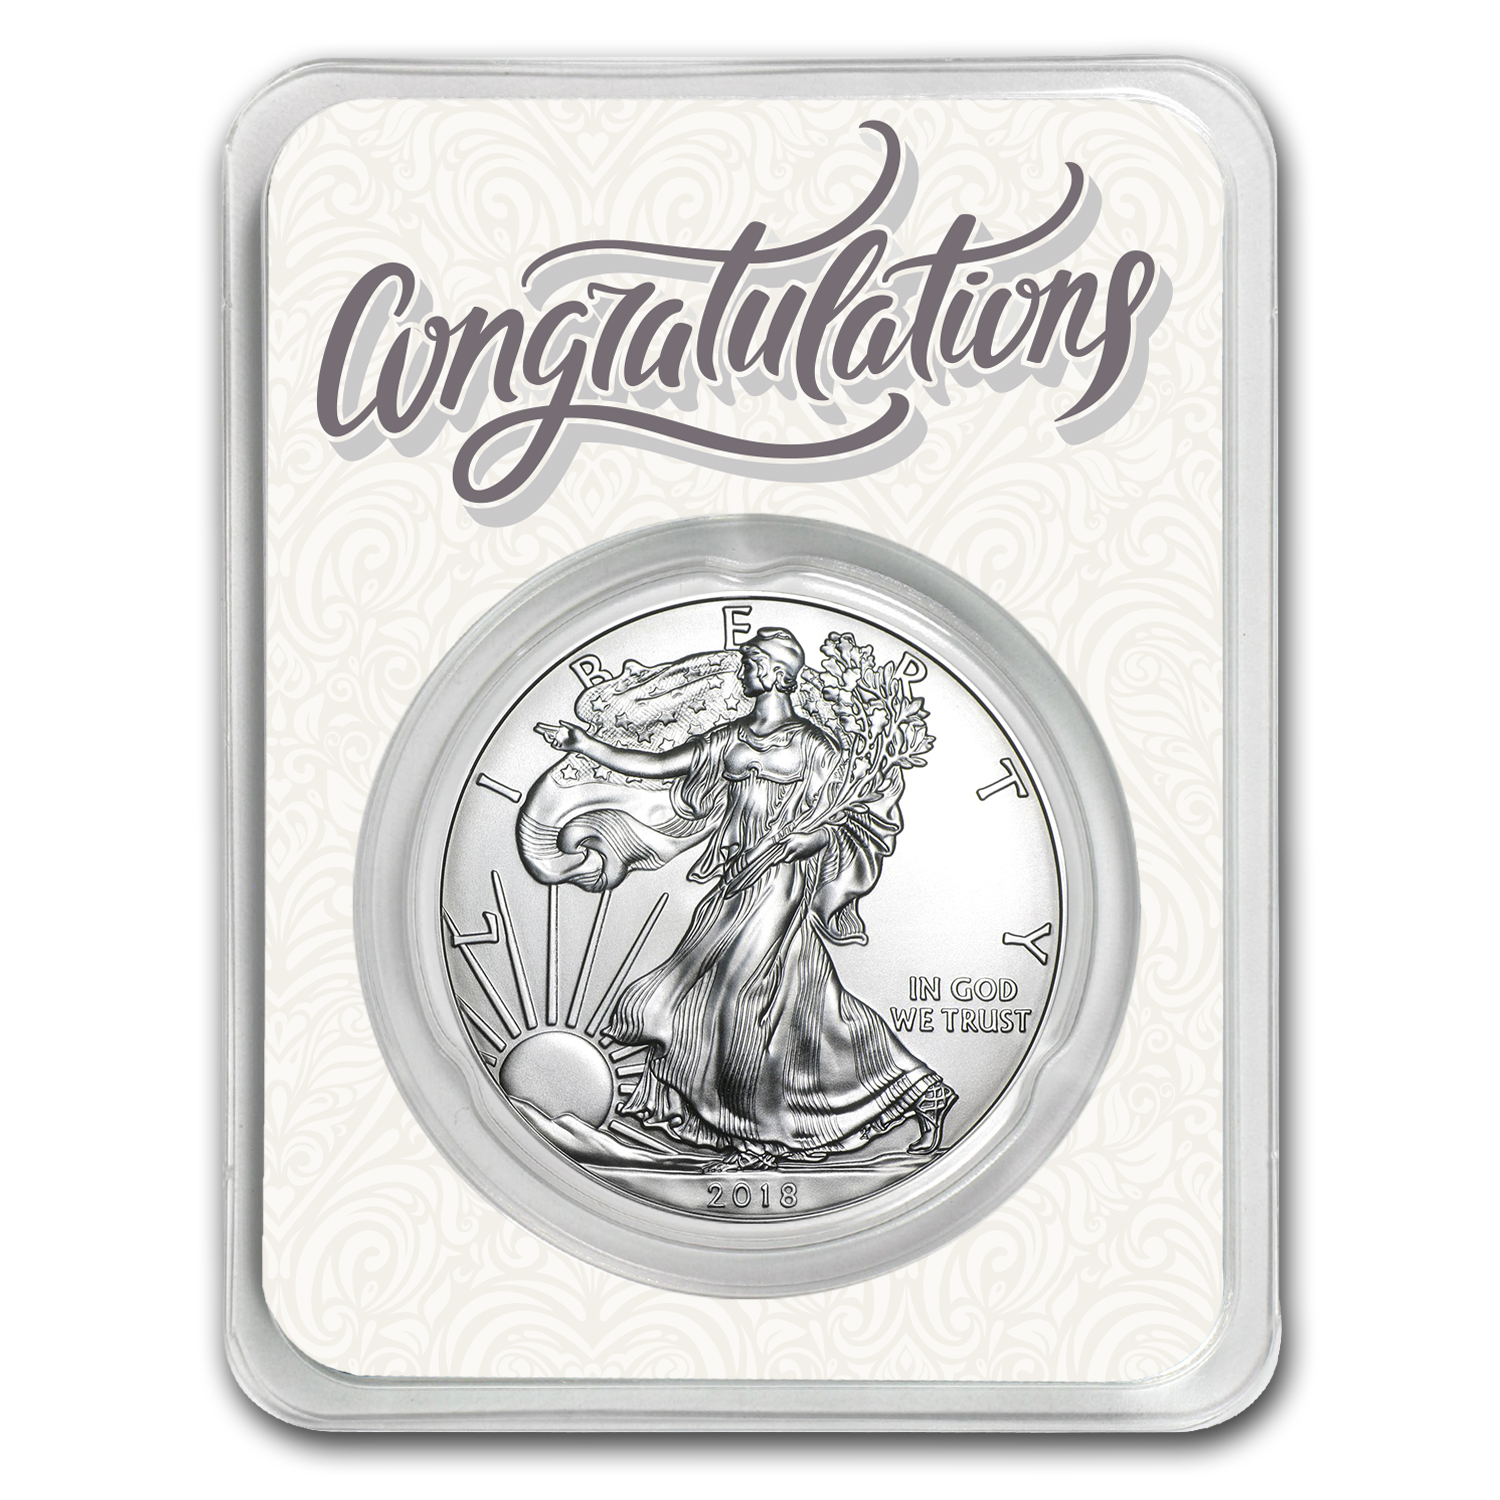 2018 1 oz Silver American Eagle - Just Married Congratulations